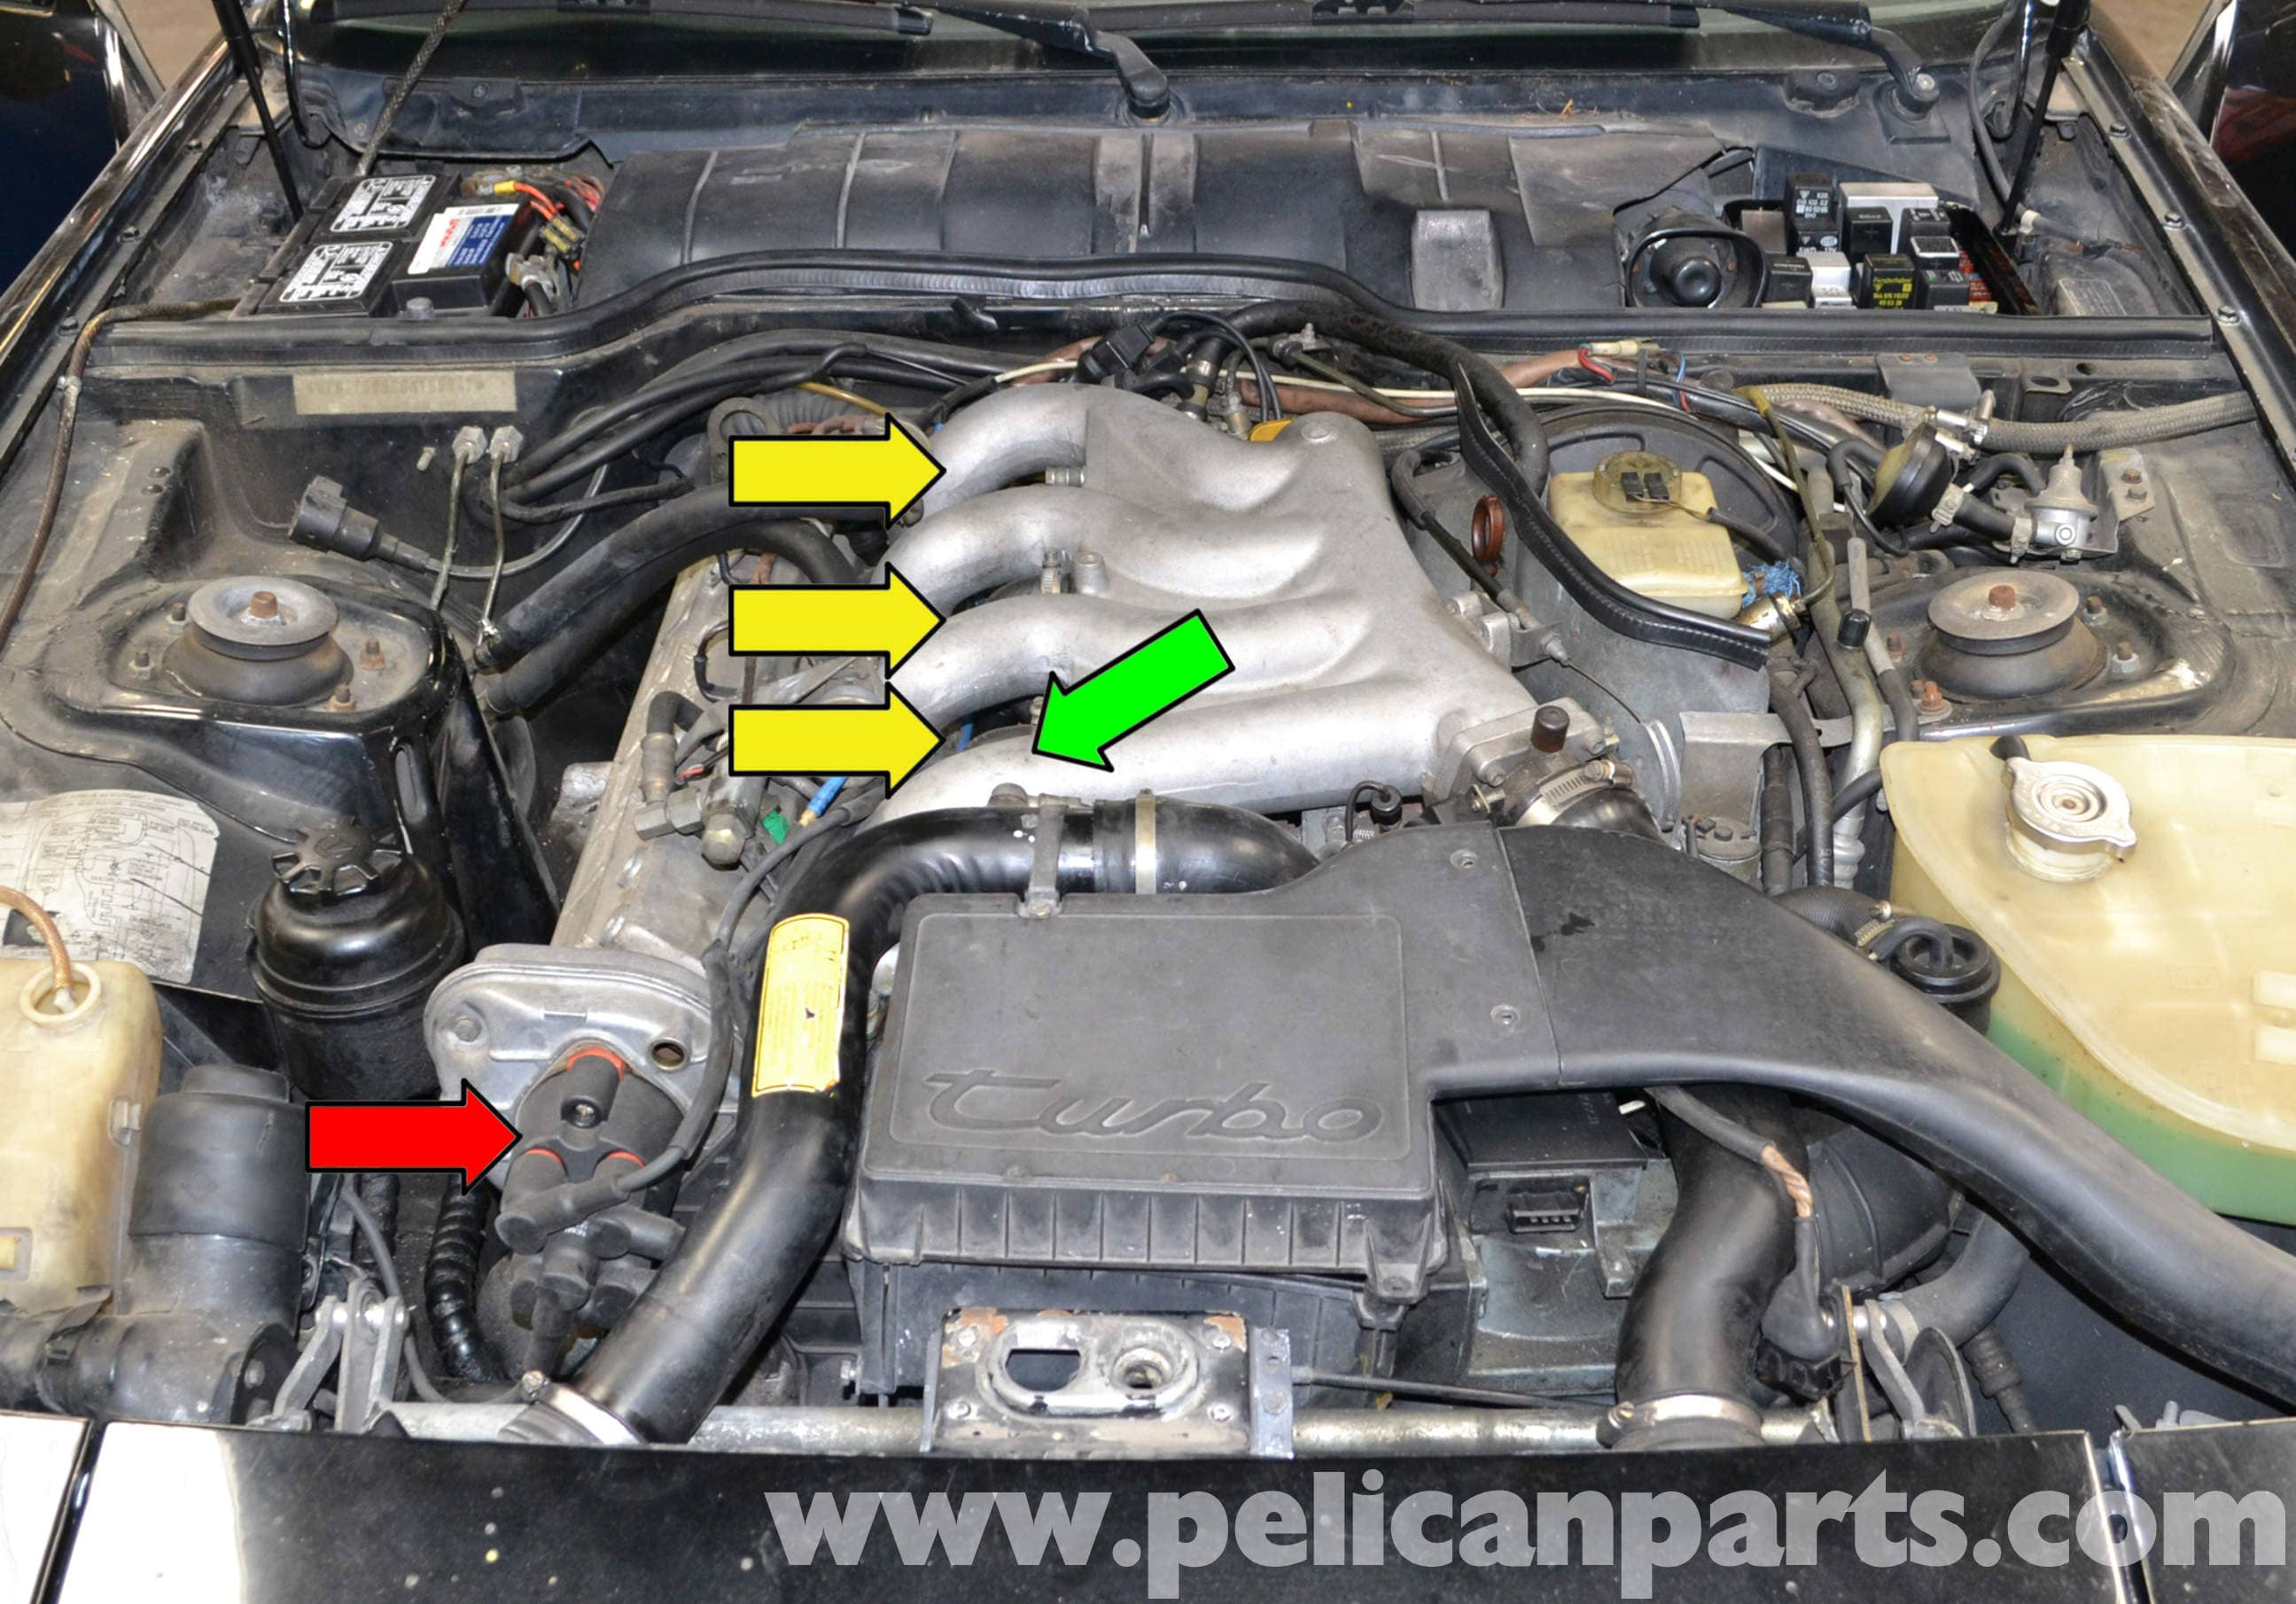 Porsche 944 Turbo Spark Plug Replacement 1986 1991 Pelican Parts Wiring A Top Large Image Extra